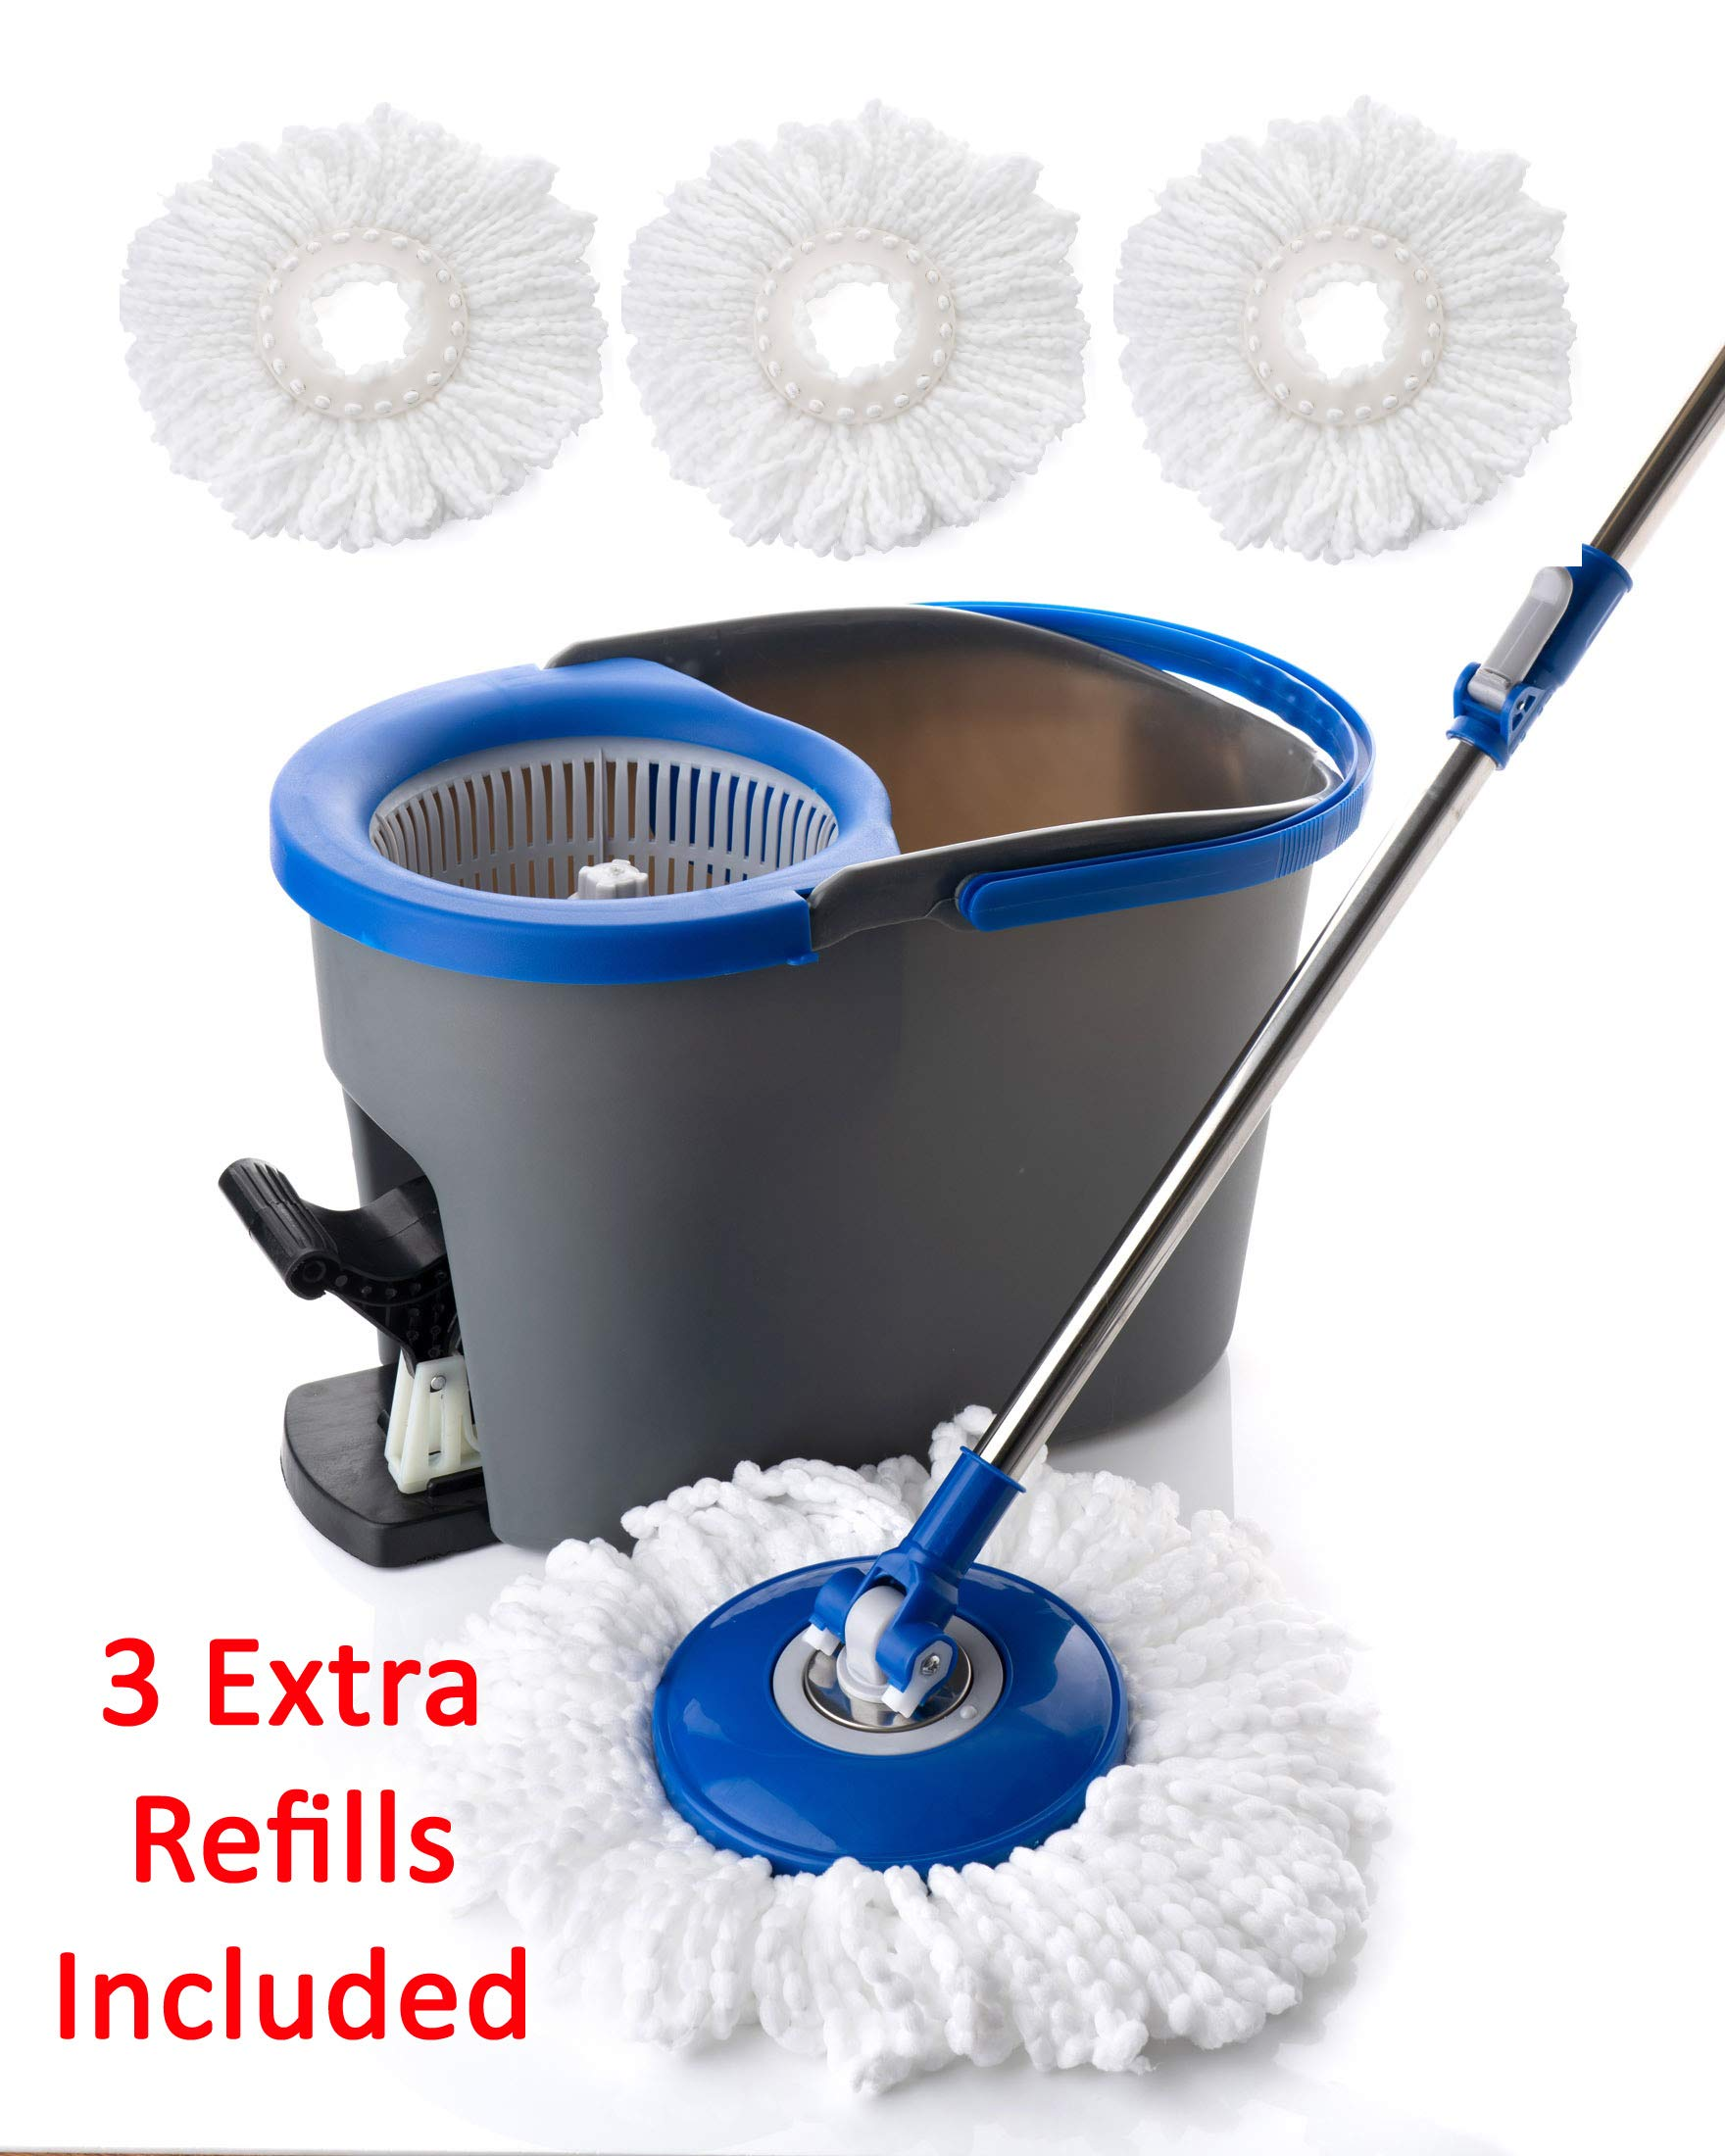 Simpli-Magic 79154 Spin Cleaning System with 3 Microfiber Mop Head Refills Included, Industrial by Simpli-Magic (Image #1)